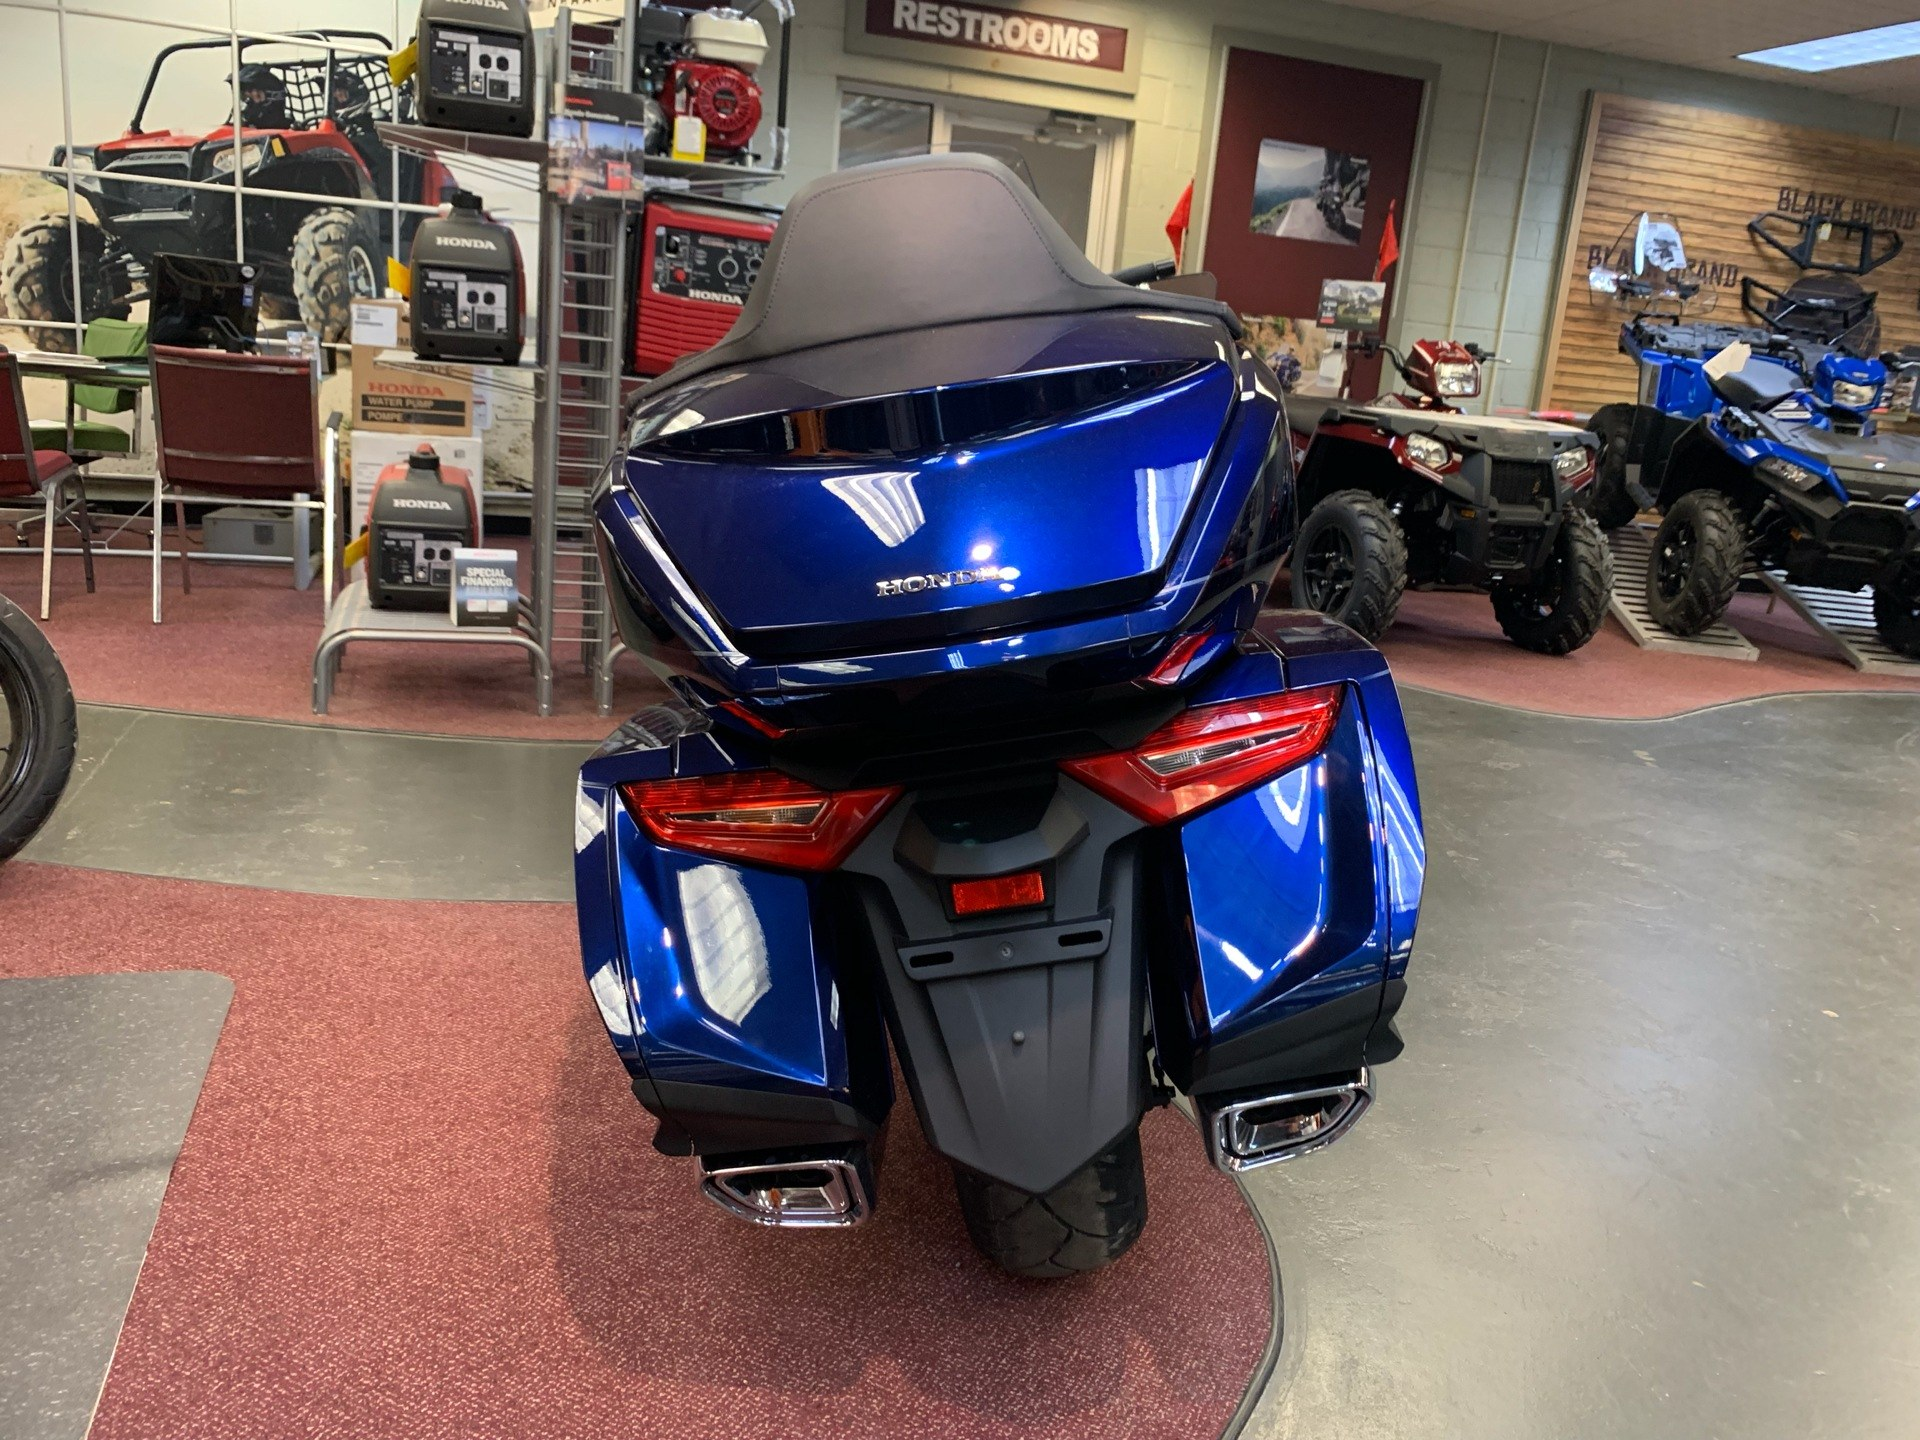 2019 Honda Gold Wing Tour Automatic DCT 5